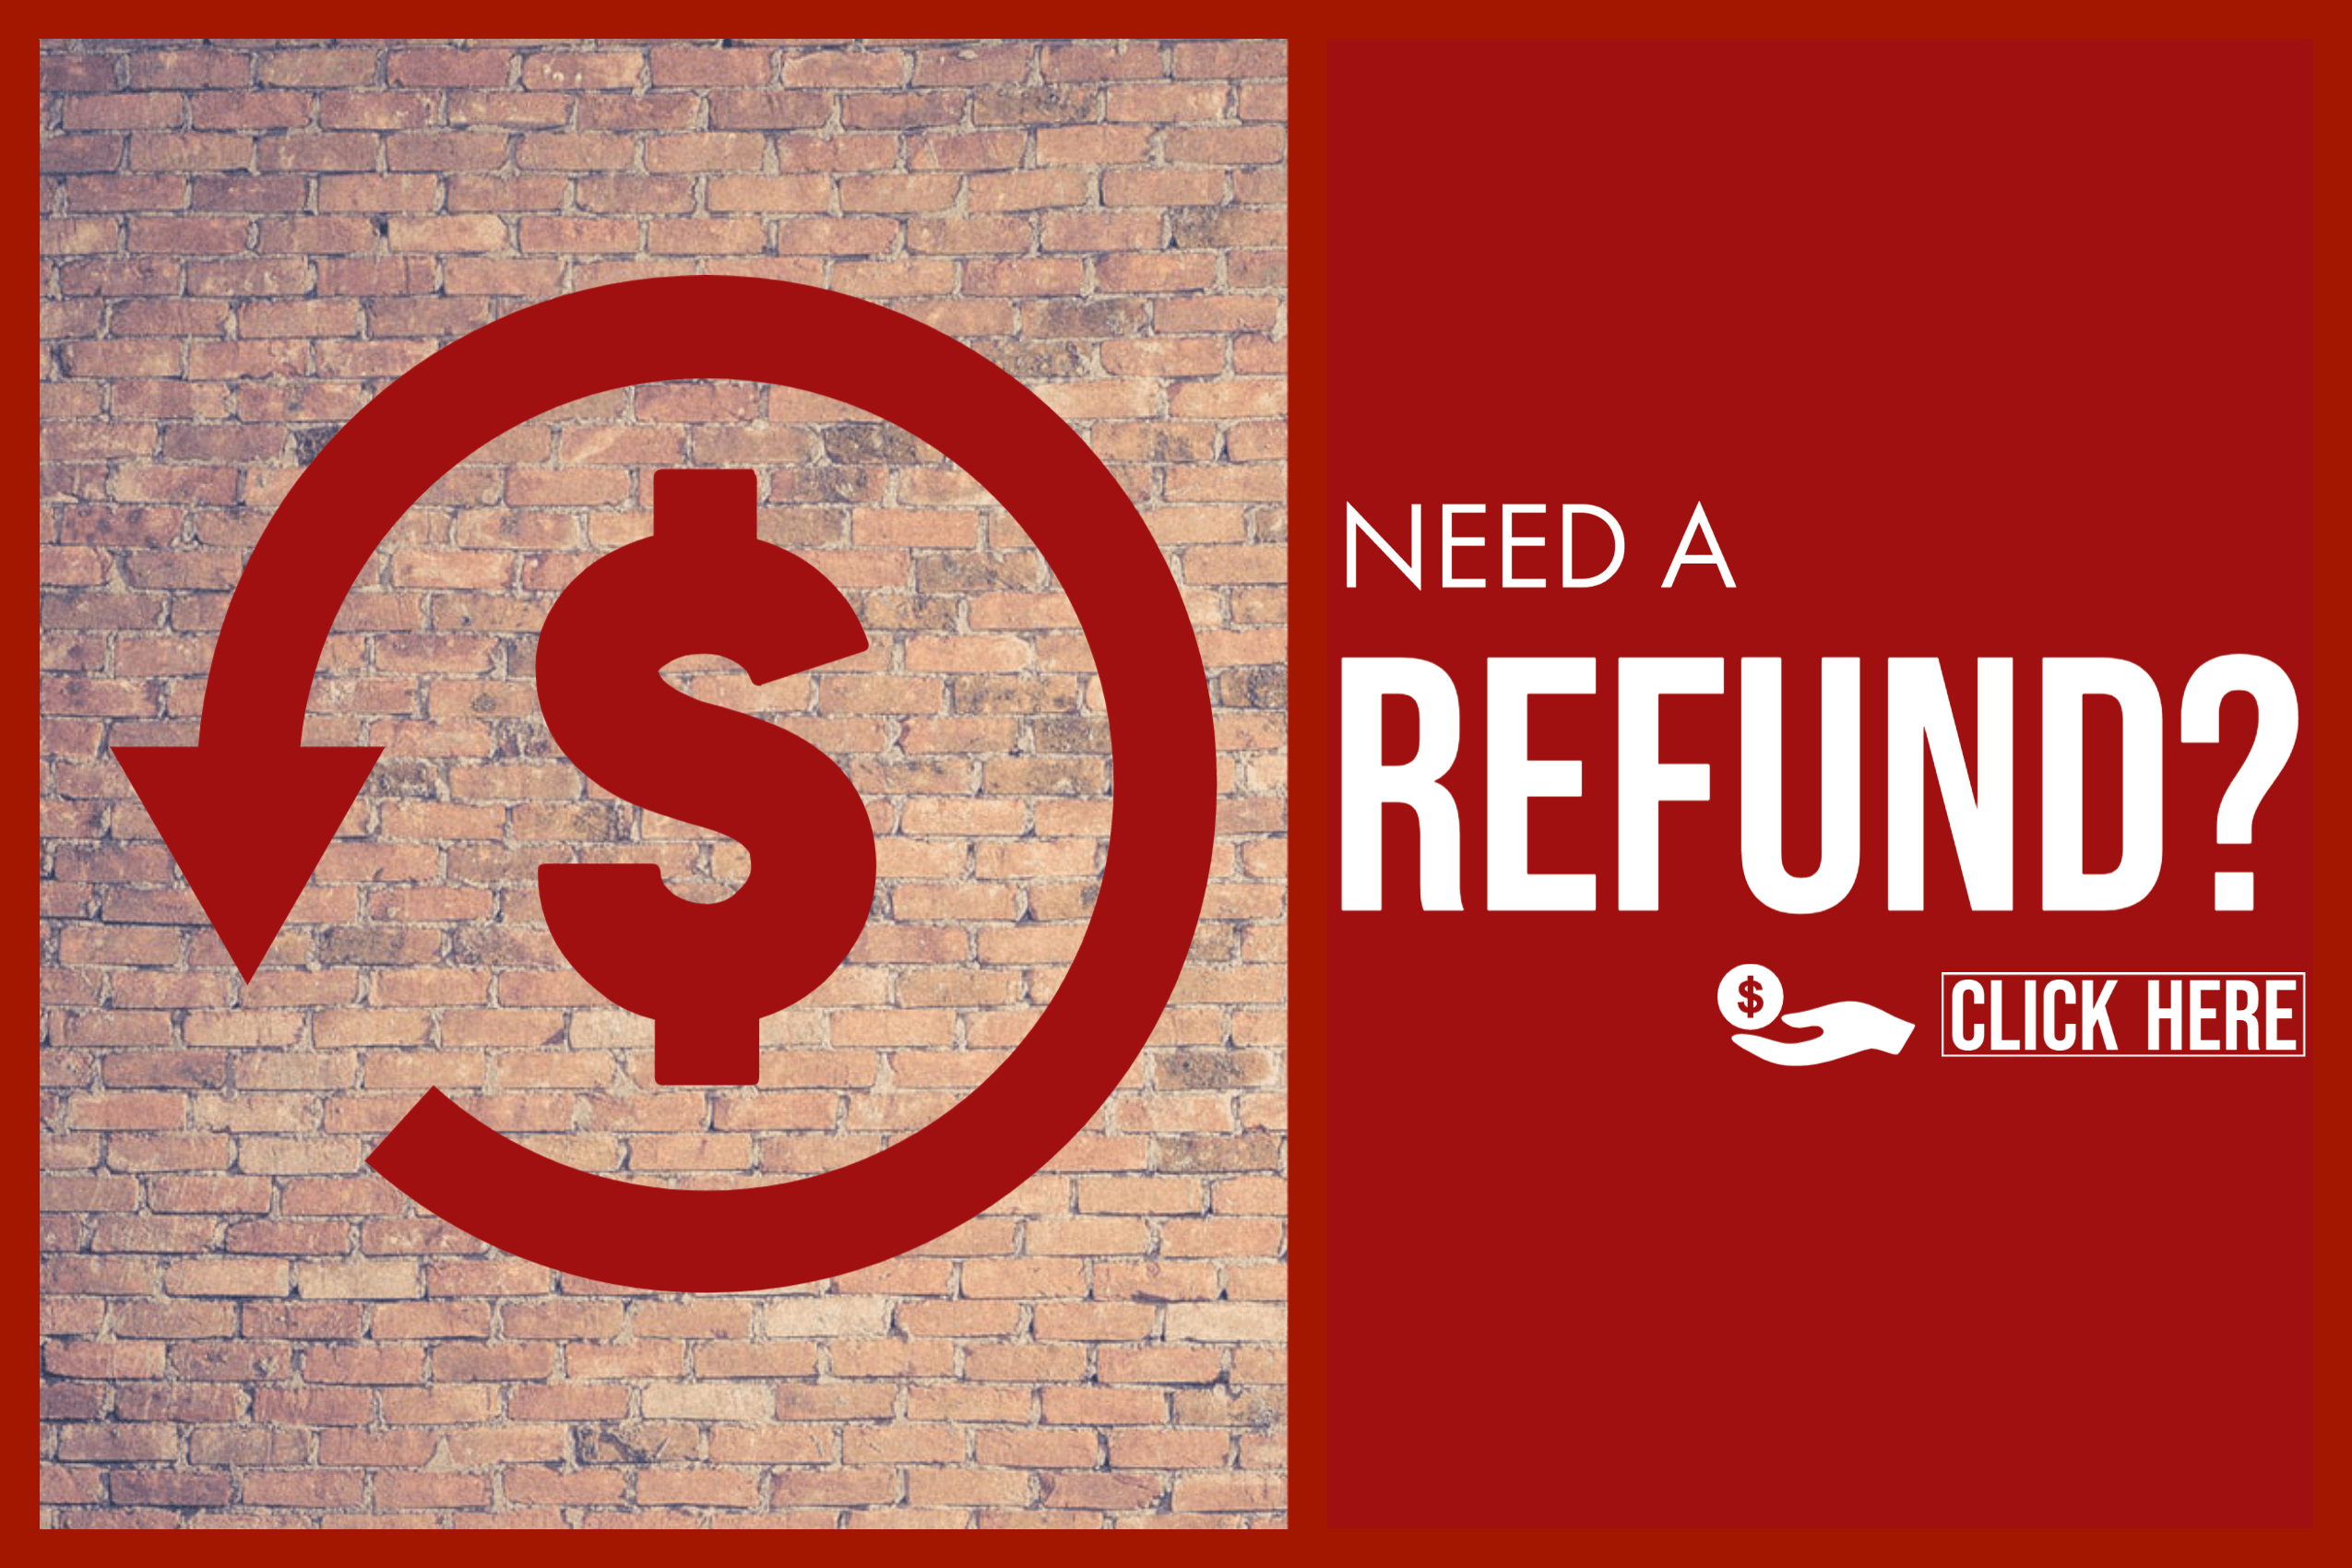 REFUND Opens in new window